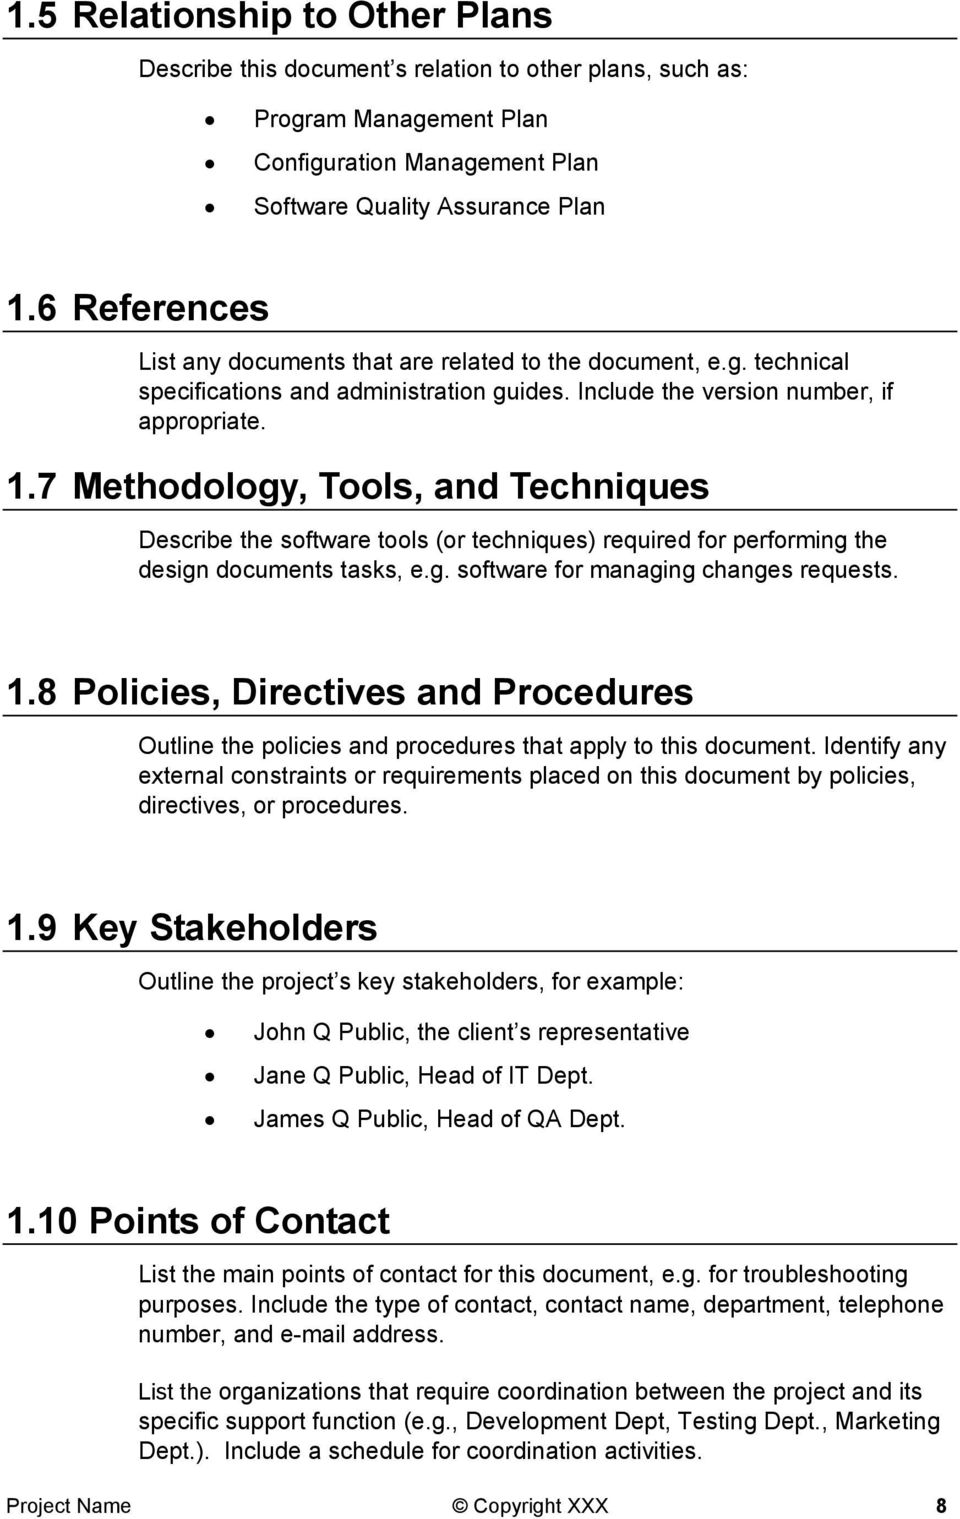 7 Methodology, Tools, and Techniques Describe the software tools (or techniques) required for performing the design documents tasks, e.g. software for managing changes requests. 1.